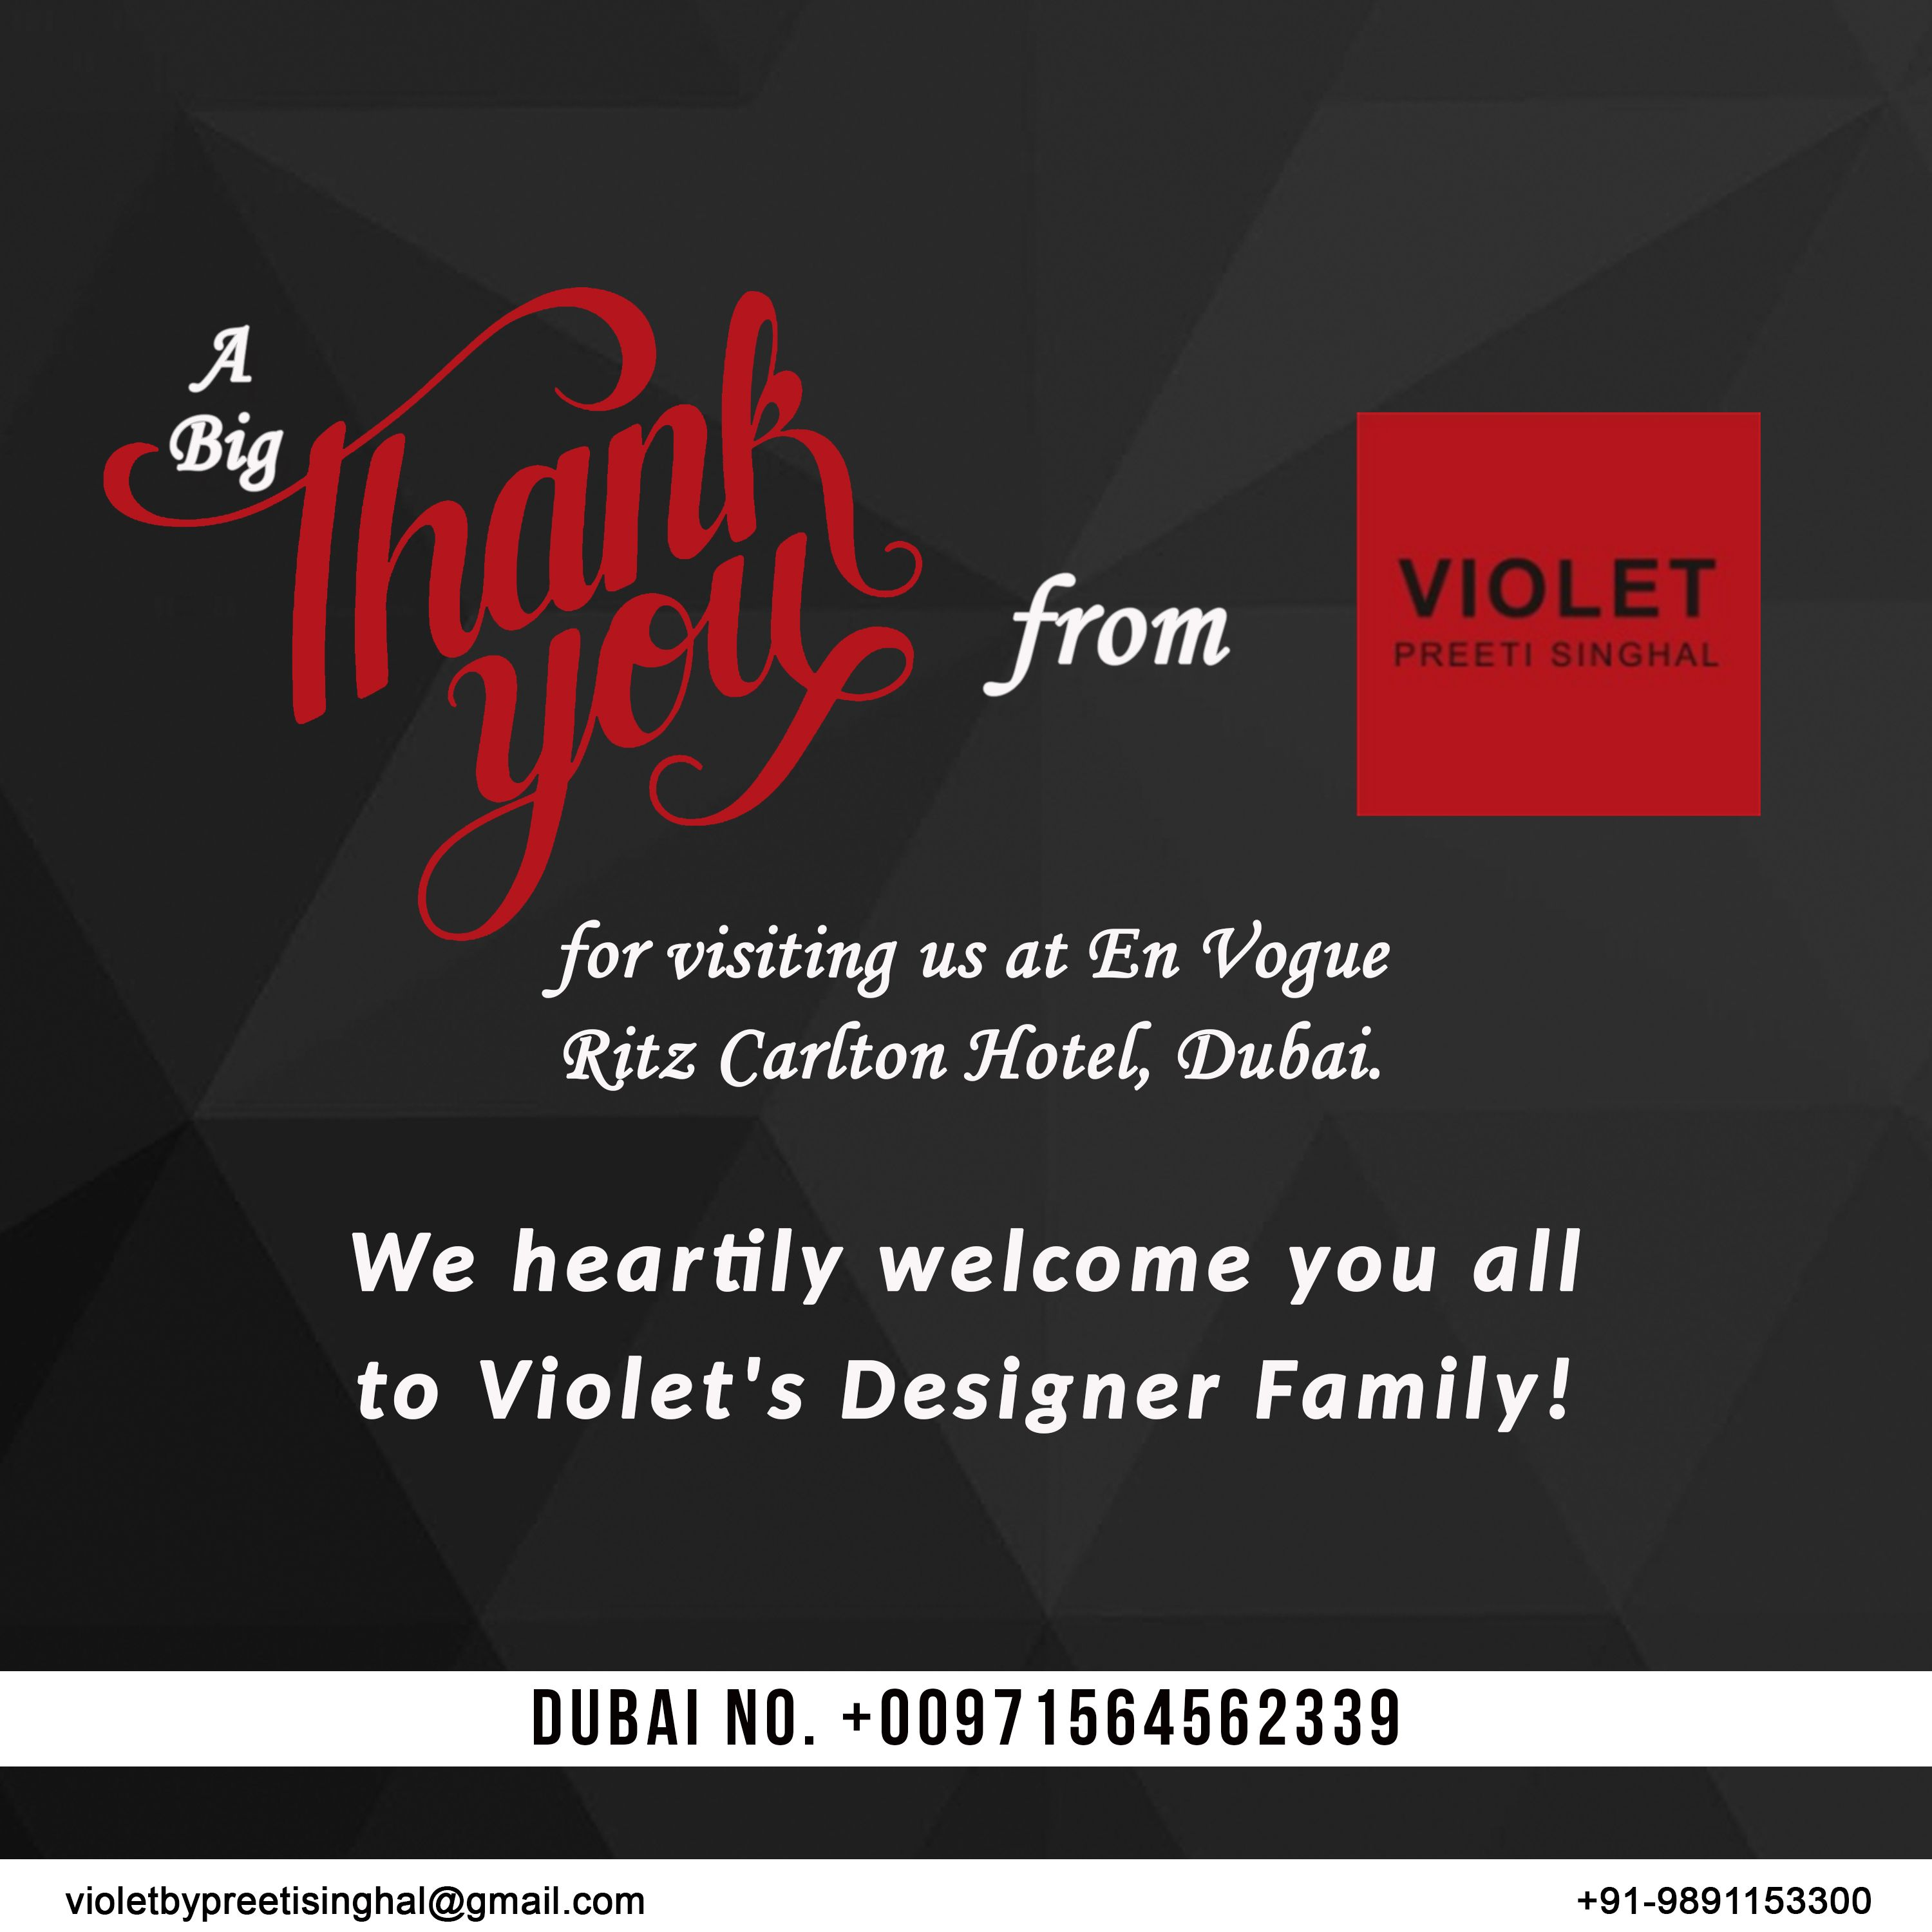 A big thank you from Violet by Preeti Sighal for visiting us at En Vogue, Ritz Carlton Hotel, Dubai.  We heartily welcome you all to Violet's Designer Family.  Dubai No. - +00971564562339  +91-9891153300 | violetbypreeti@gmail.com www.preetisinghal.com